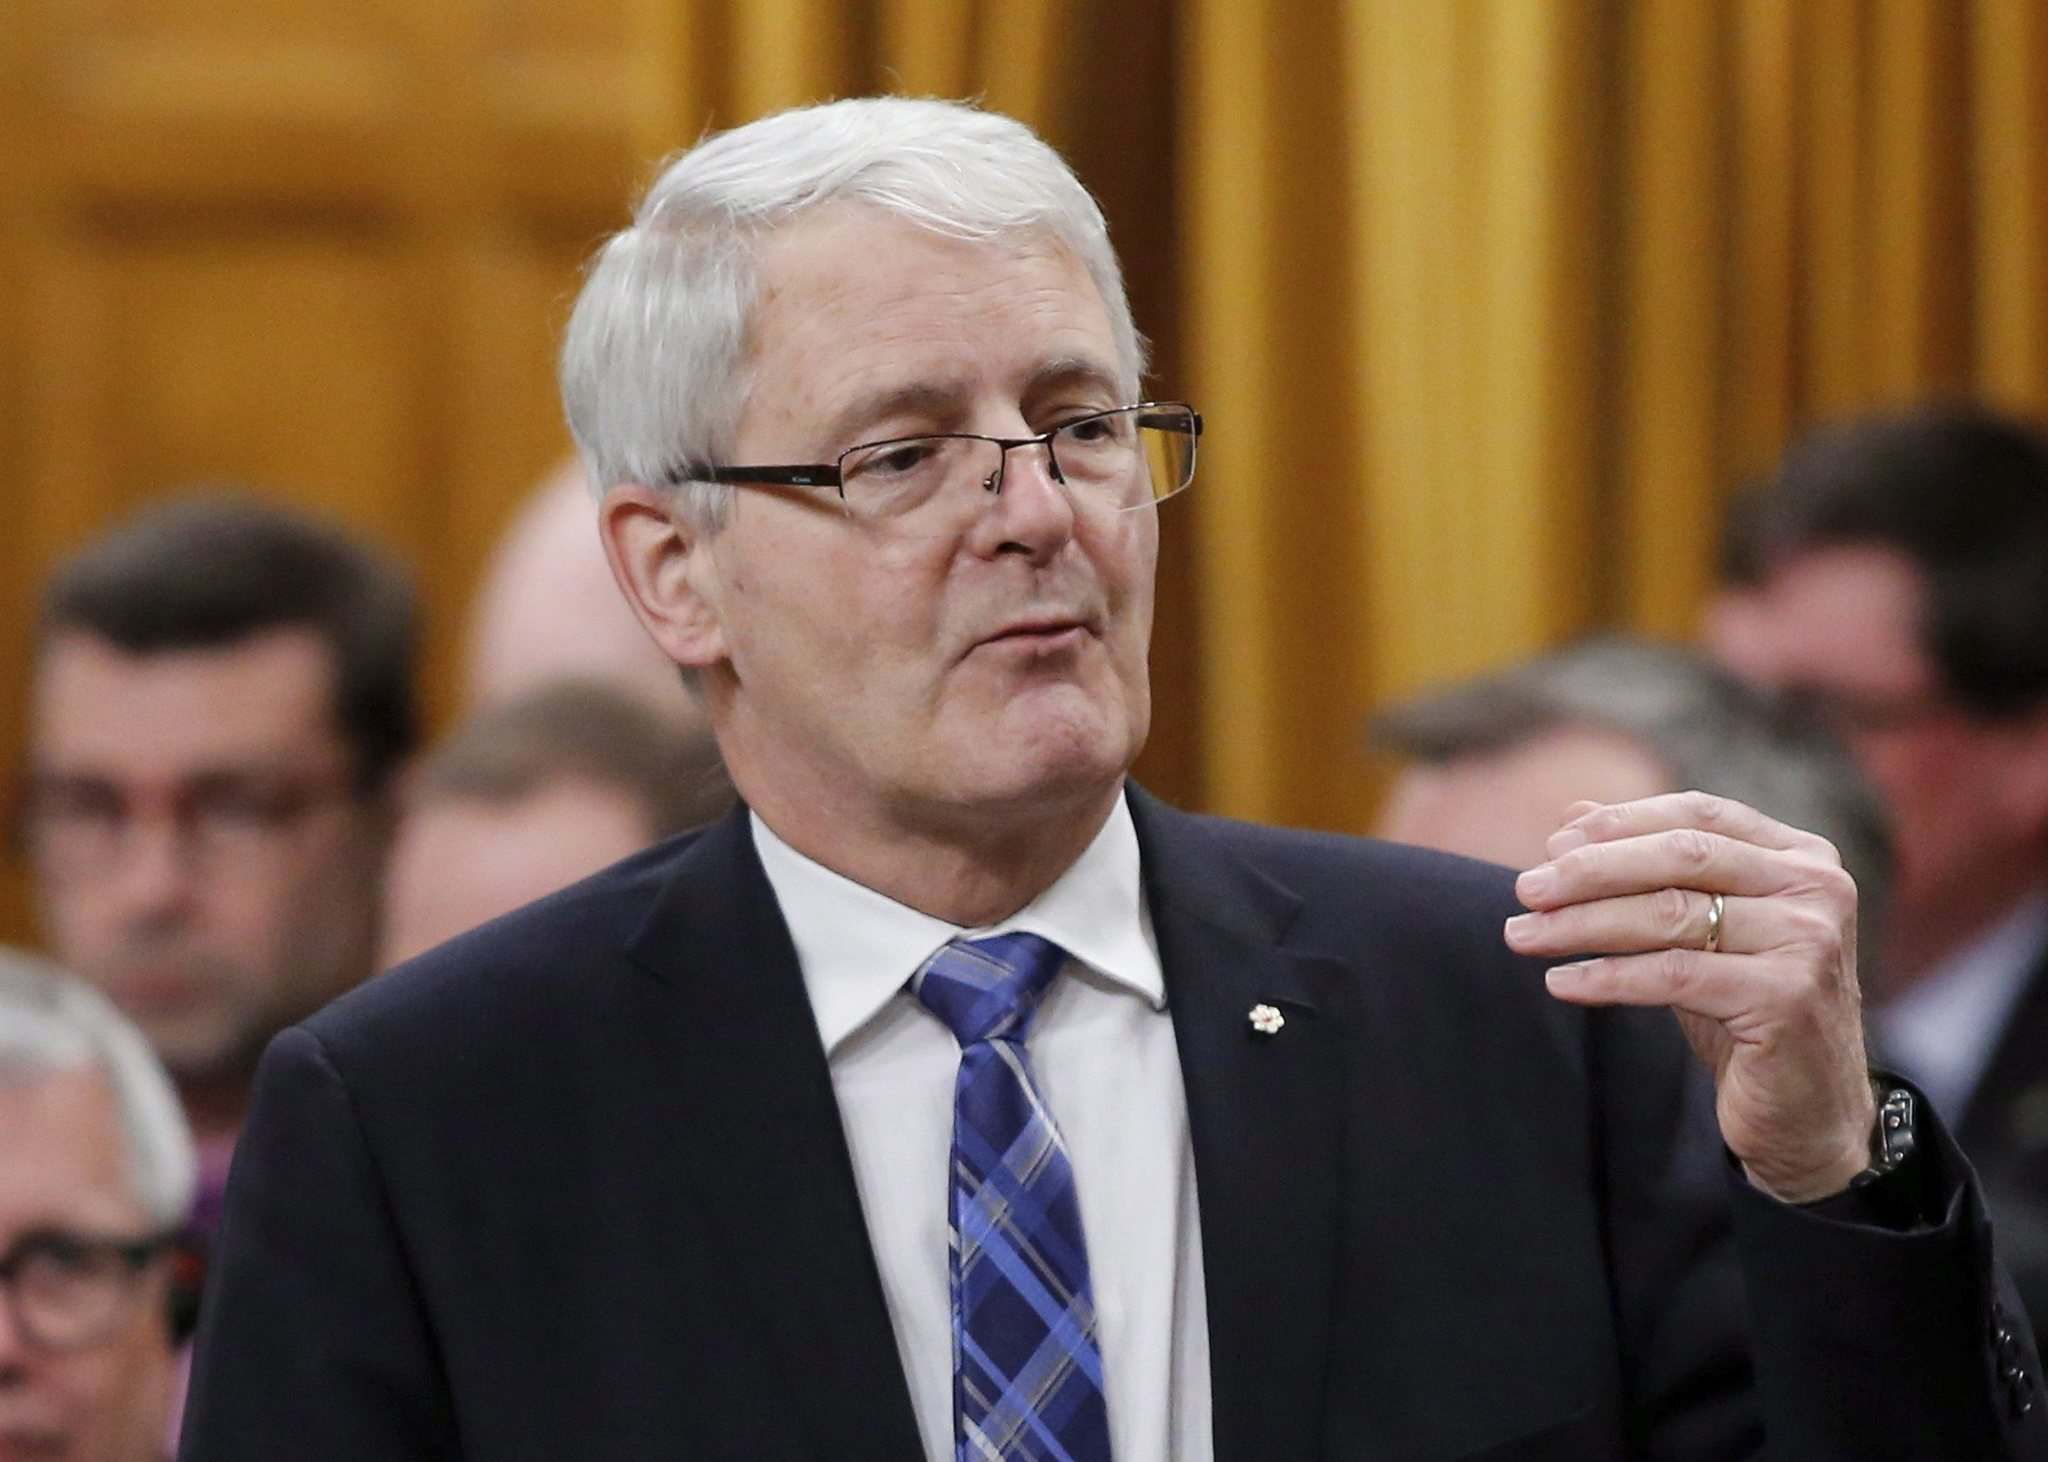 Patrick Doyle / The Canadian Press Files</p><p>Transport Minister Marc Garneau shows no inclination to hold CN to account for VIA Rail's scheduling problems.</p>